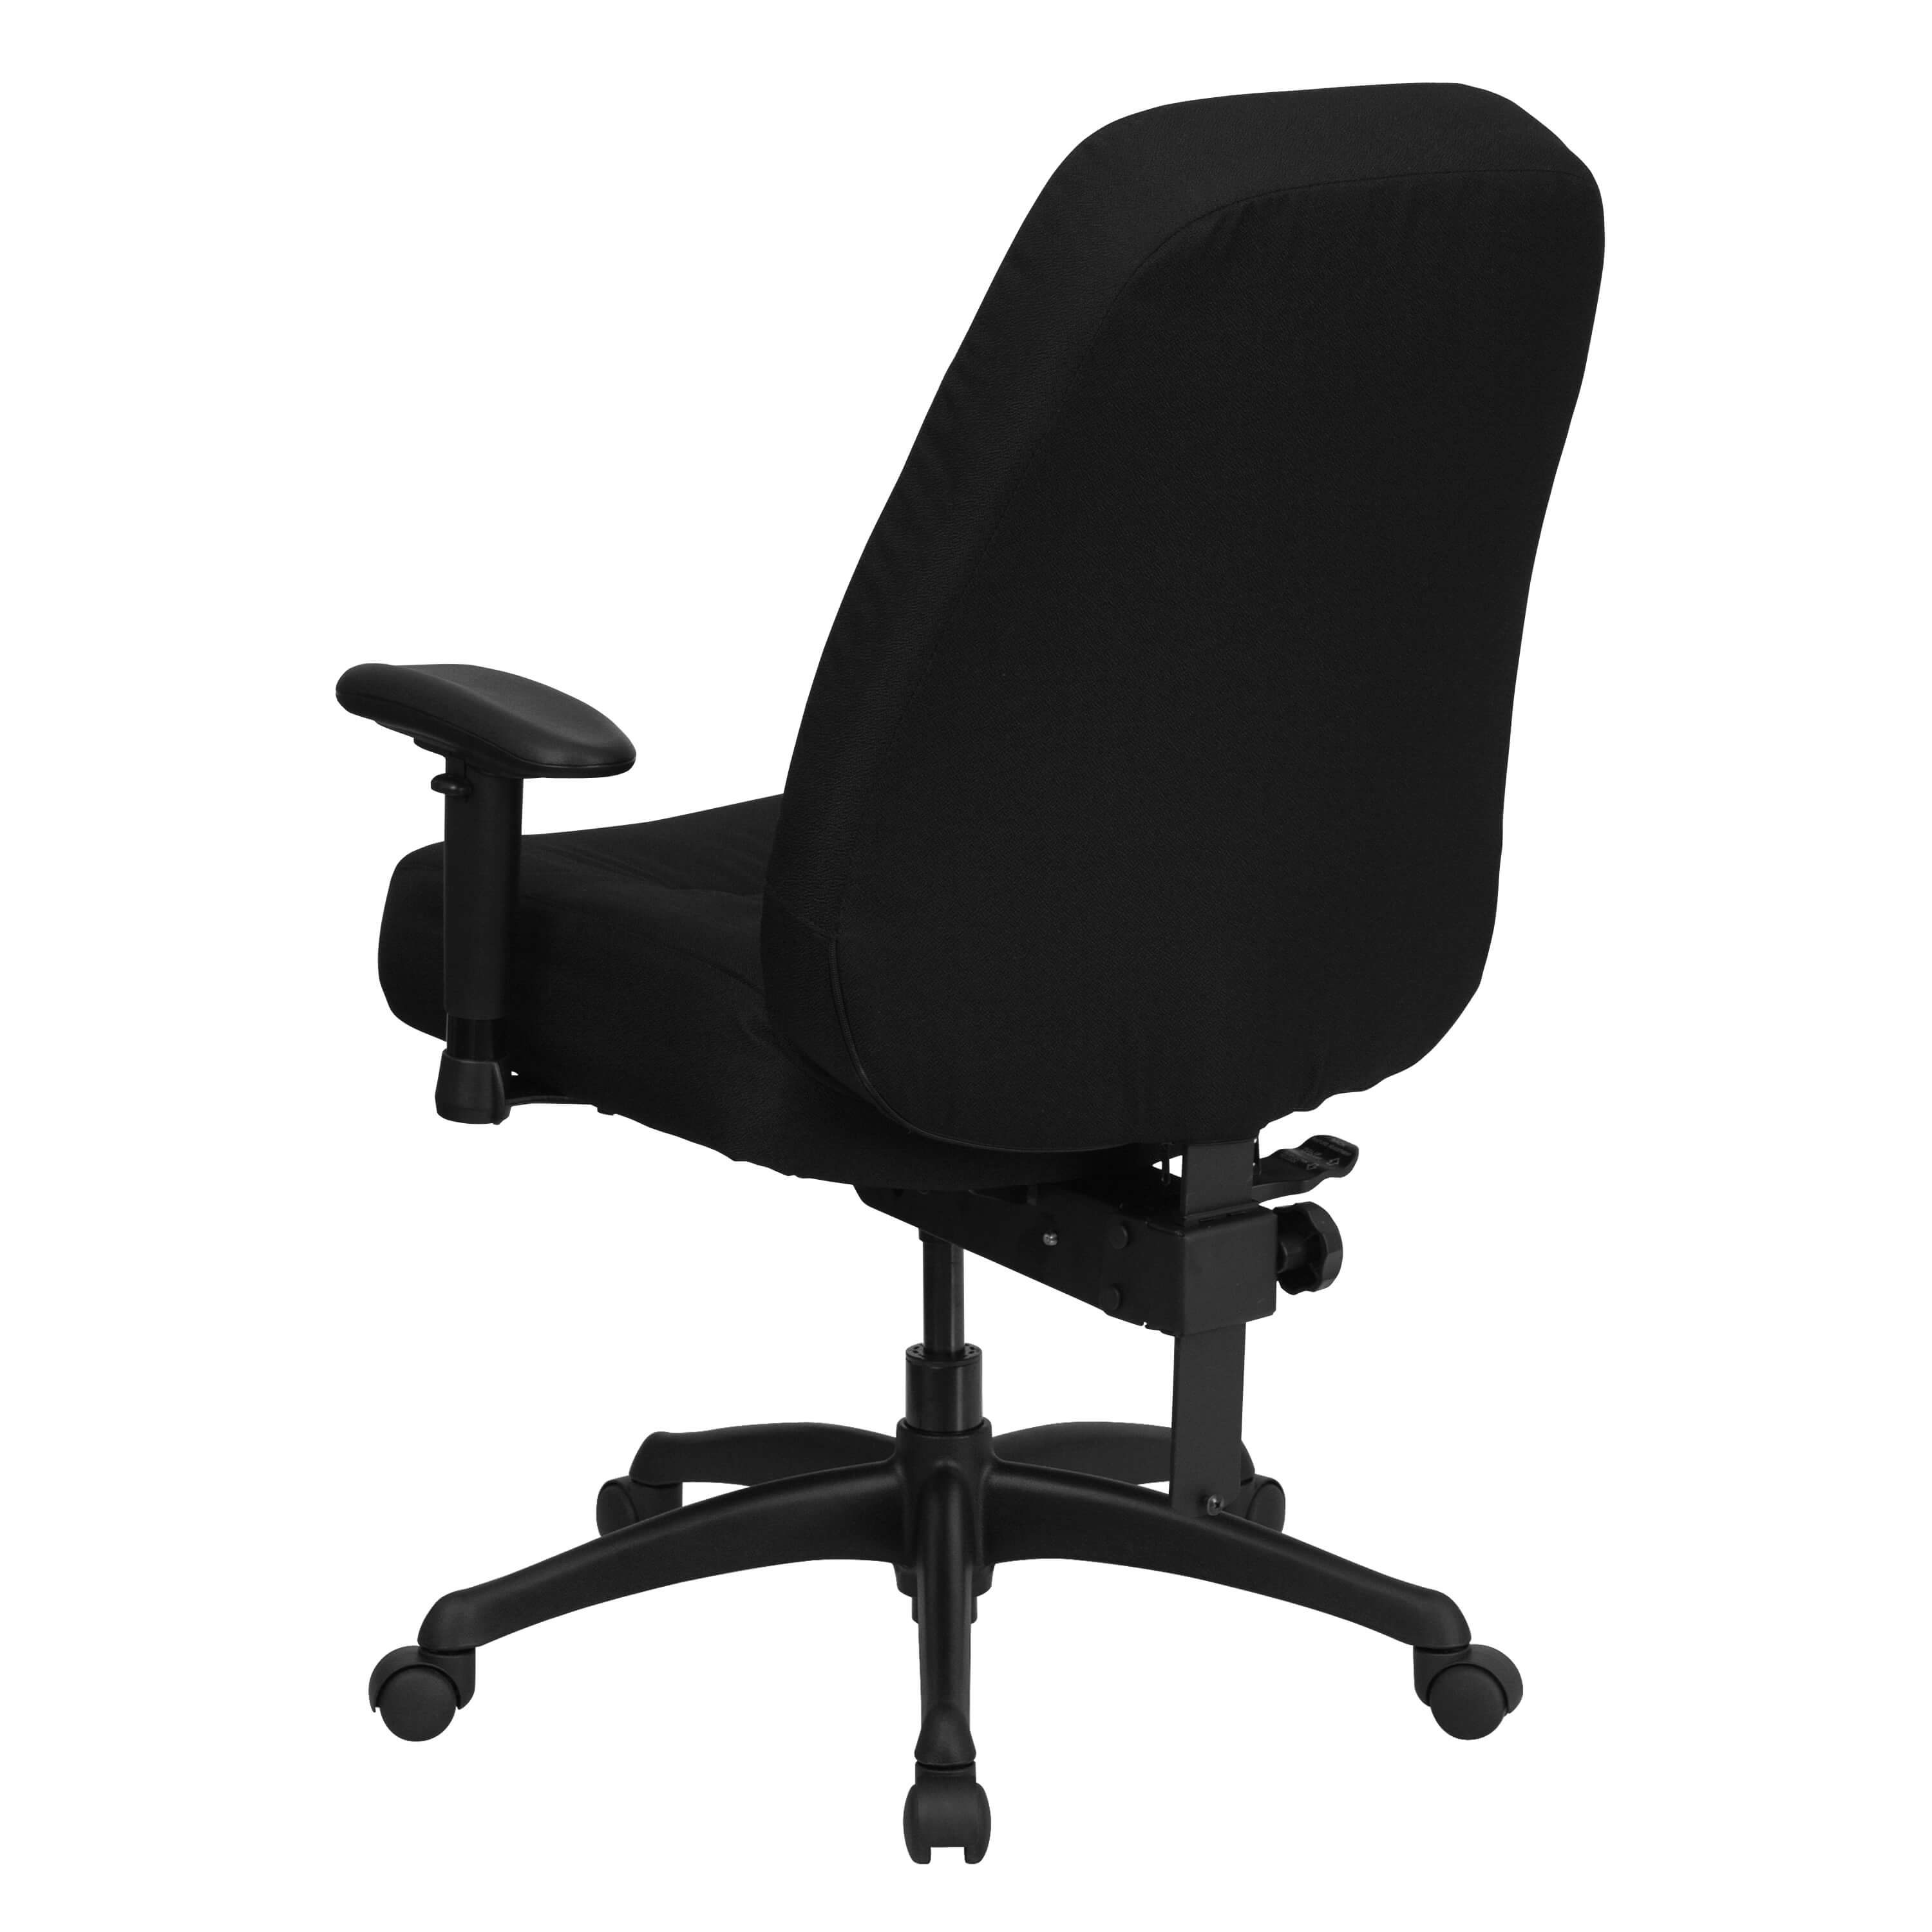 Heavy weight capacity office chair back view